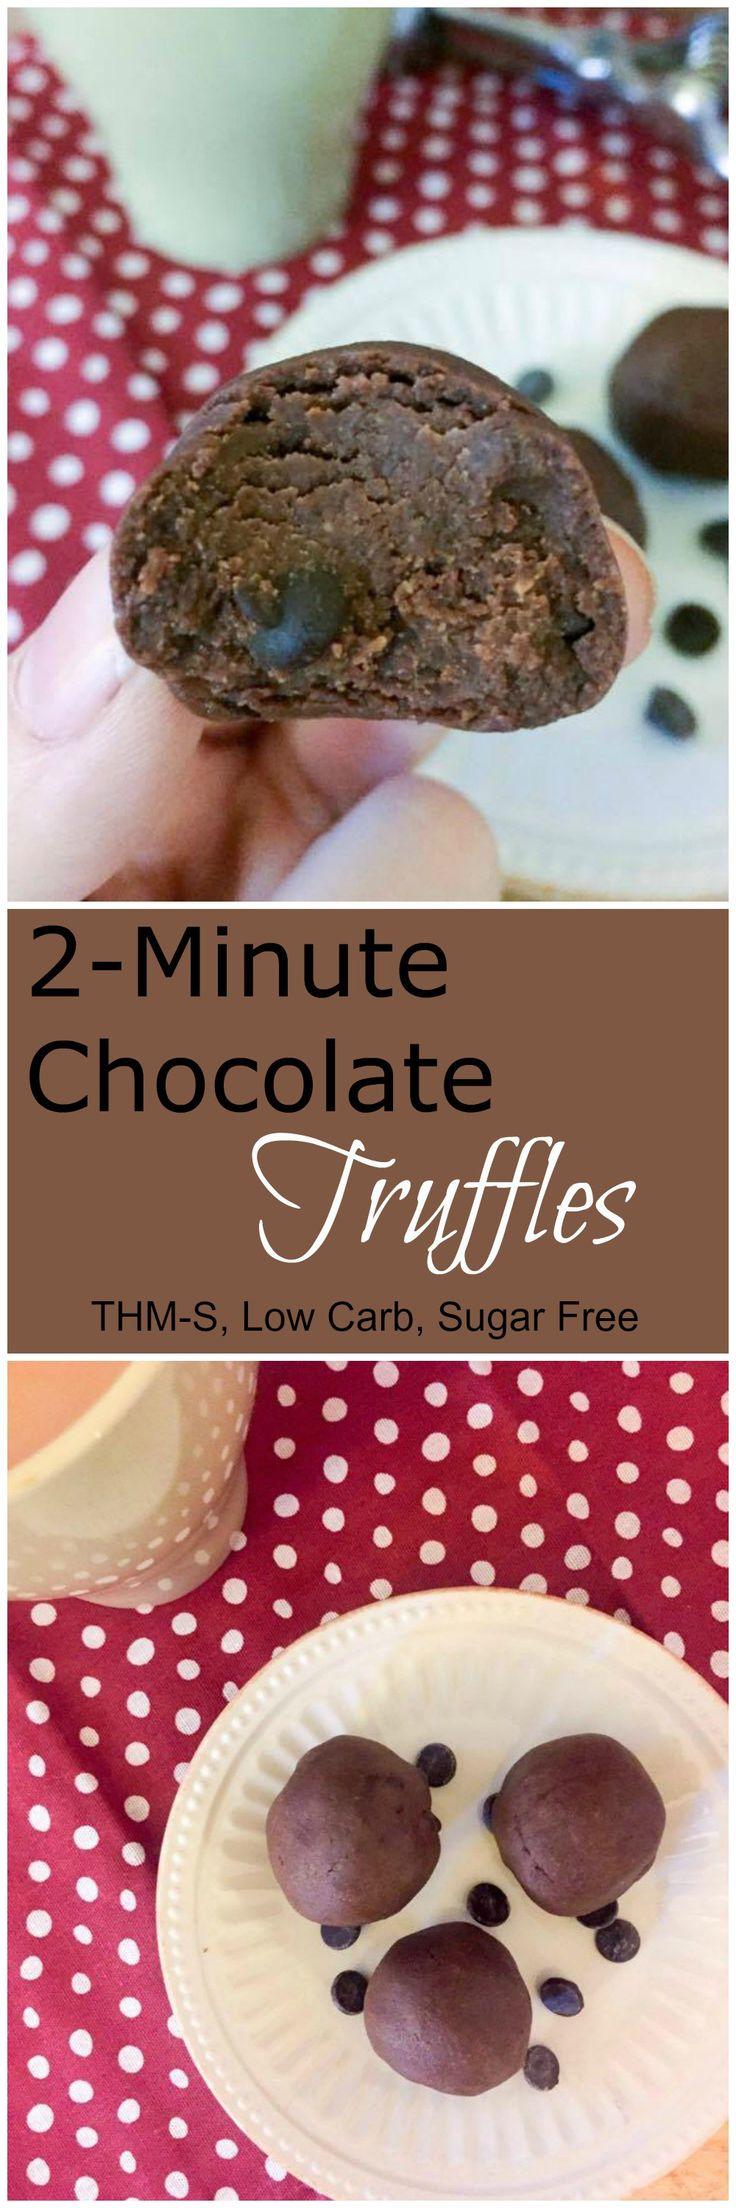 low carb-sugar free-thm-chocolate-truffles